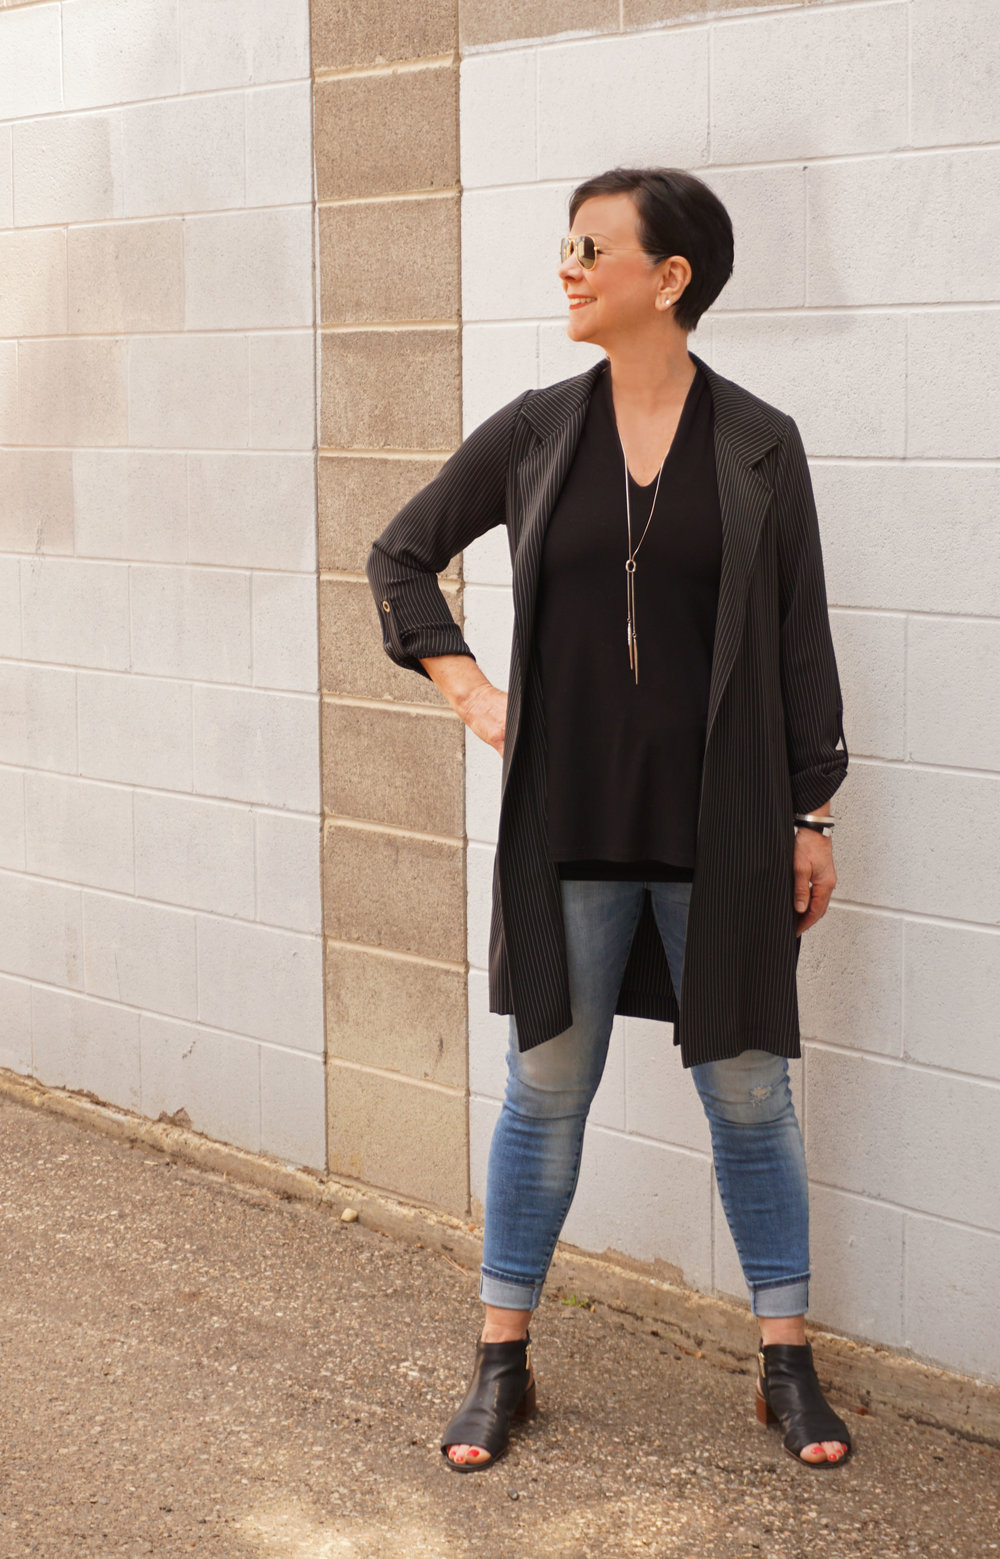 Here Colleen is wearing another lightweight jacket, this time with a looser blouse-like feel. Tiny pinstripes add some interest, but let's face it, this is mostly black and that's okay.